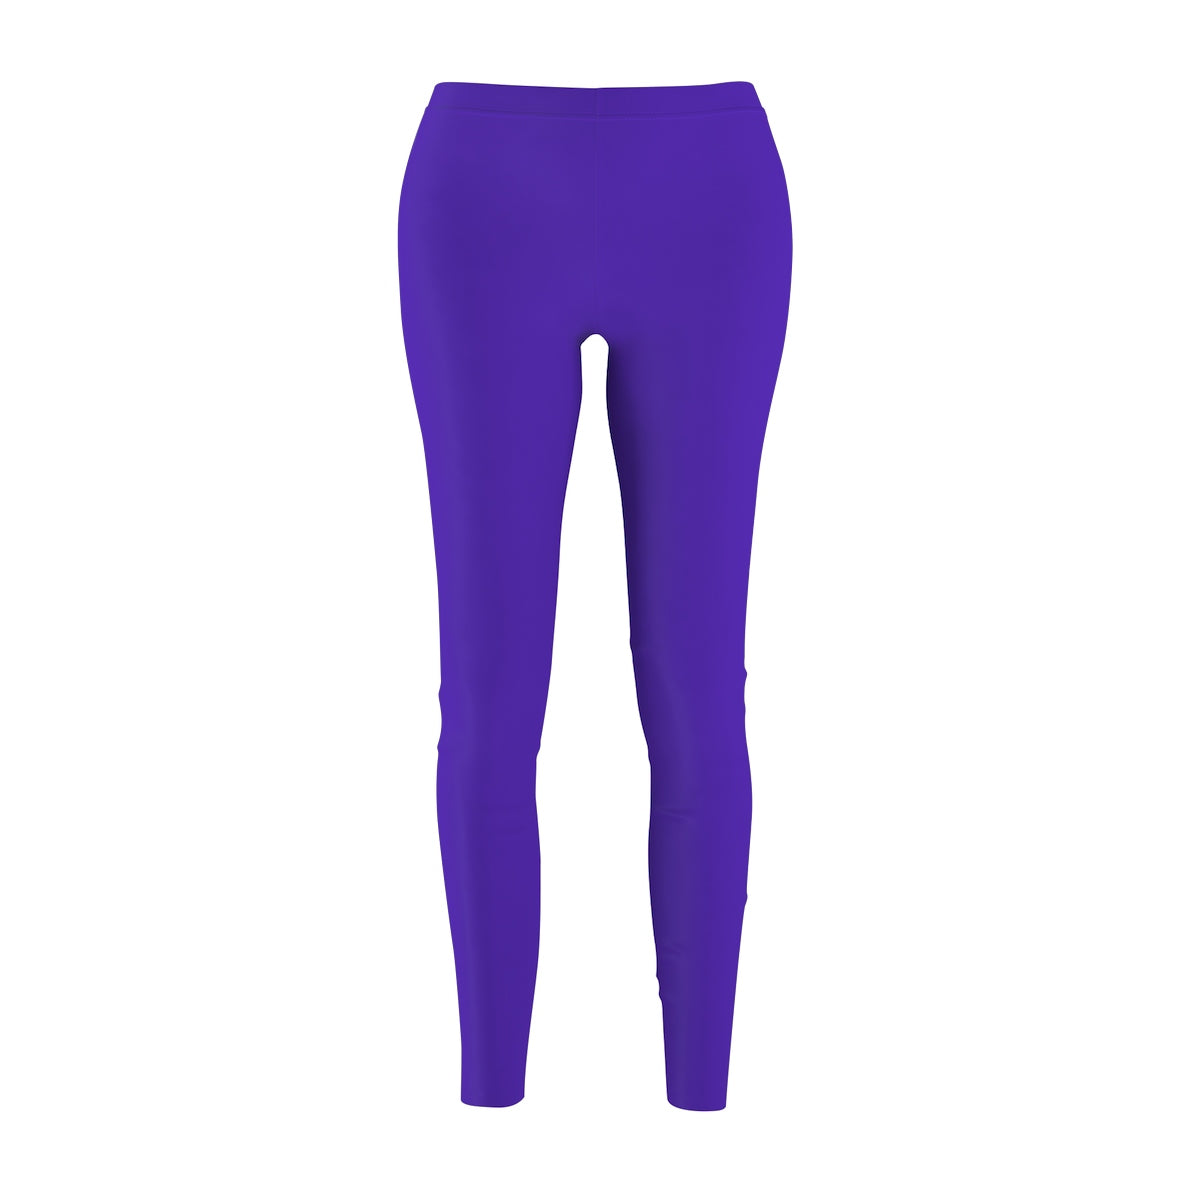 Iris Bright Purple Classic Solid Color Women's Casual Leggings - Made in USA-Casual Leggings-M-Heidi Kimura Art LLC